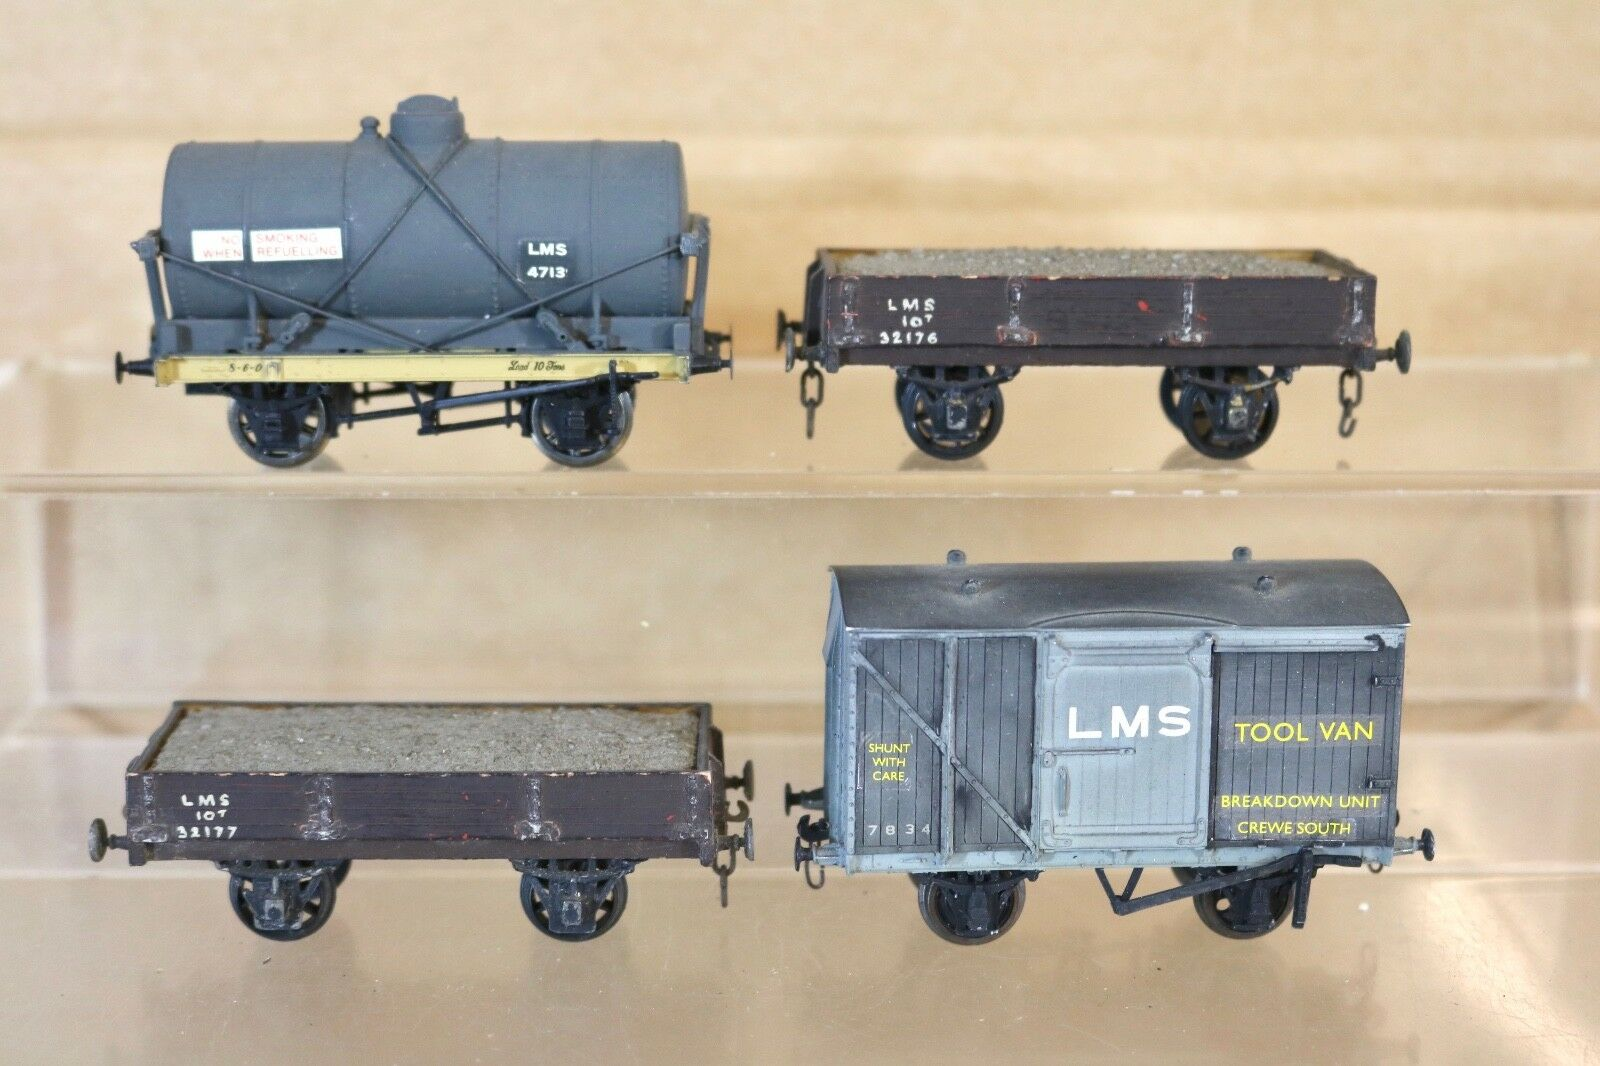 KIT BUILT OO GAUGE RAKE of 4 LMS TANK BREAKDOWN CREWE NORTH & OPEN WAGON nq